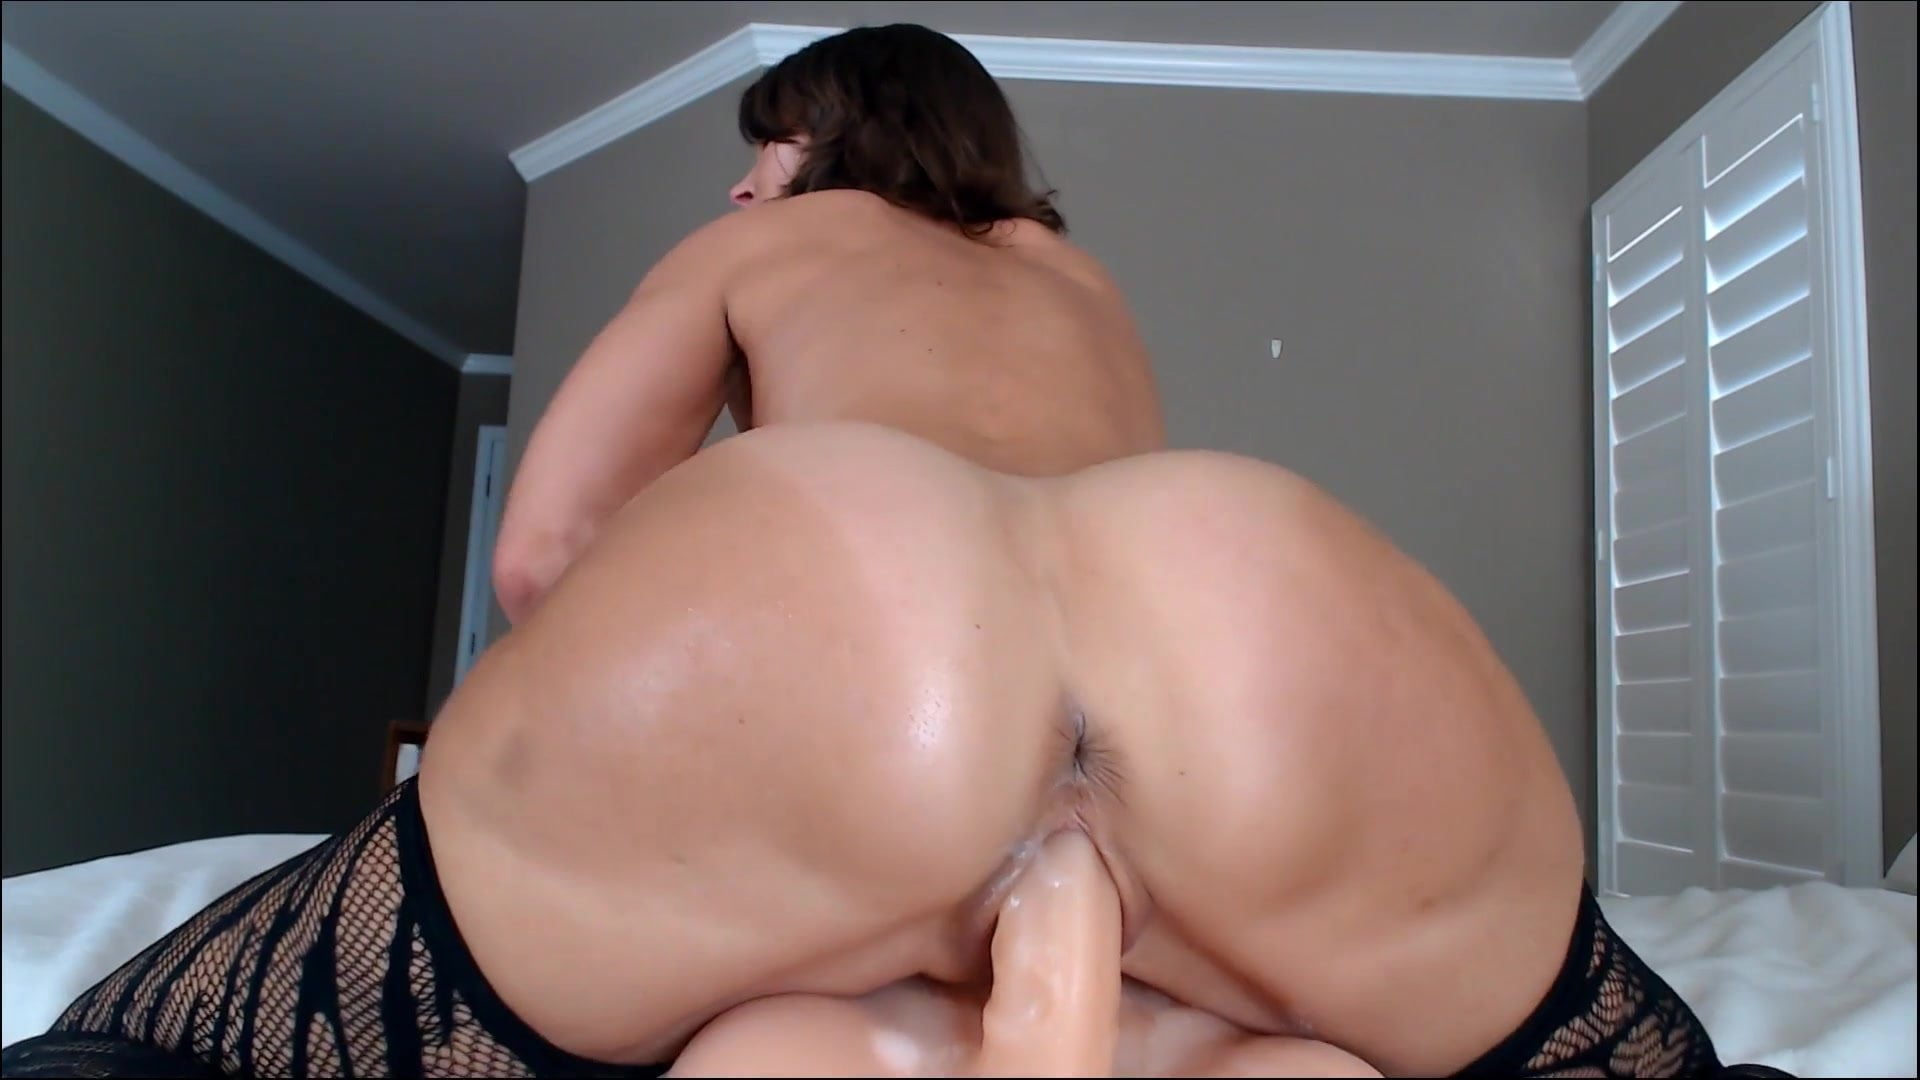 a girl playing with her pussy